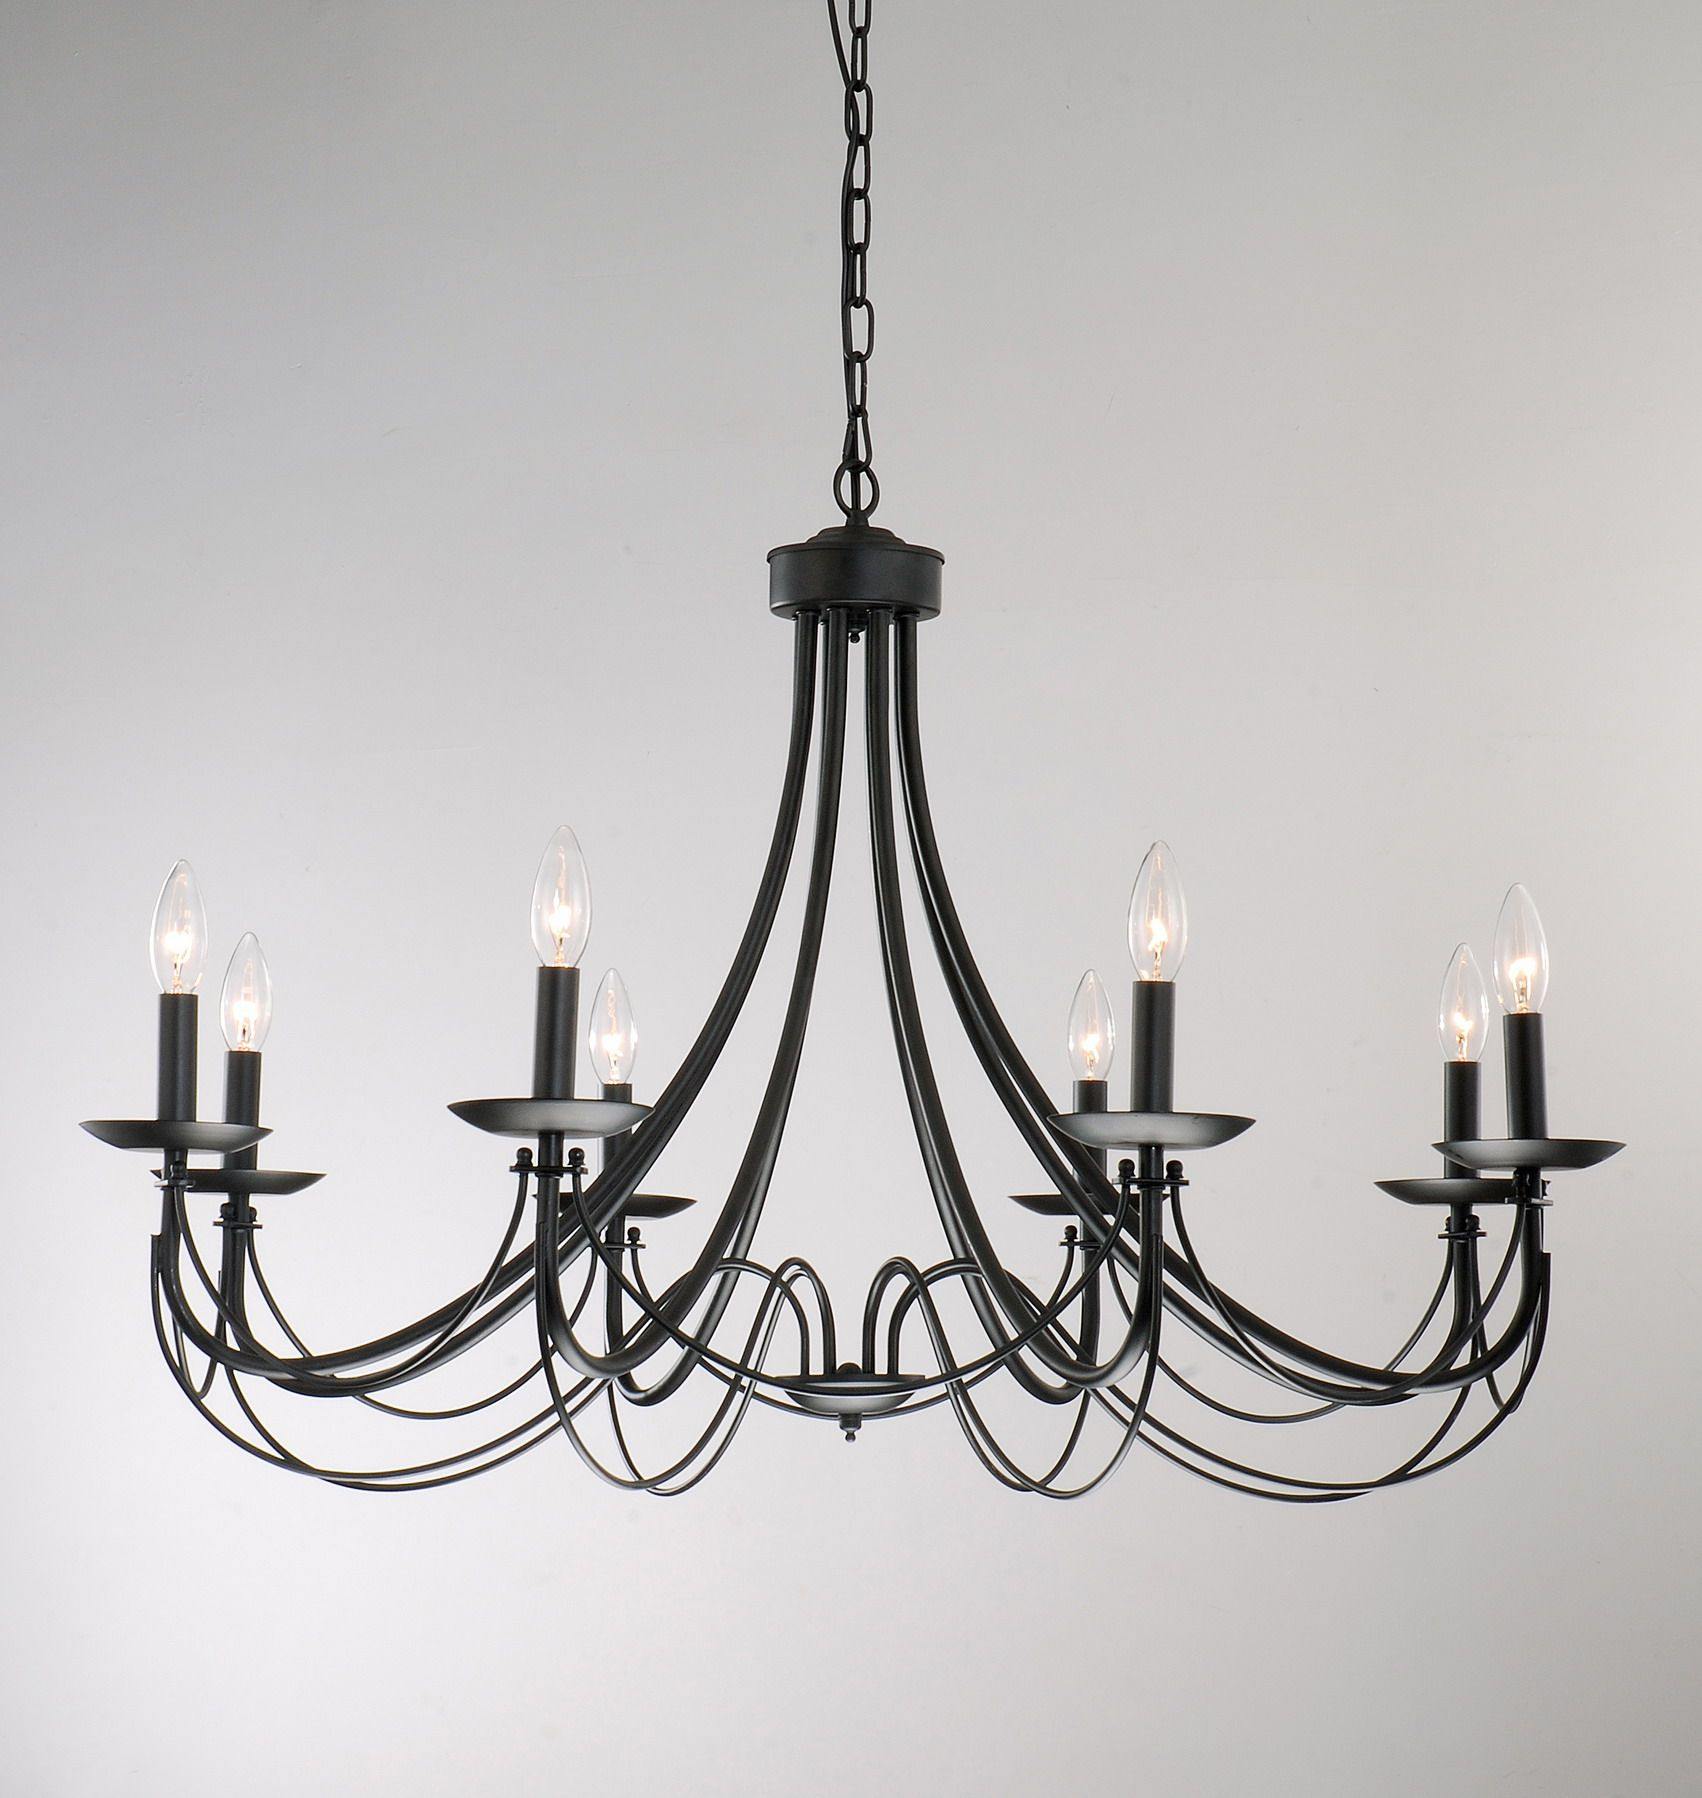 Iron 8 light black chandelier pinterest black chandelier iron 8 light black chandelier overstock shopping great deals on otis designs chandeliers pendants aloadofball Images